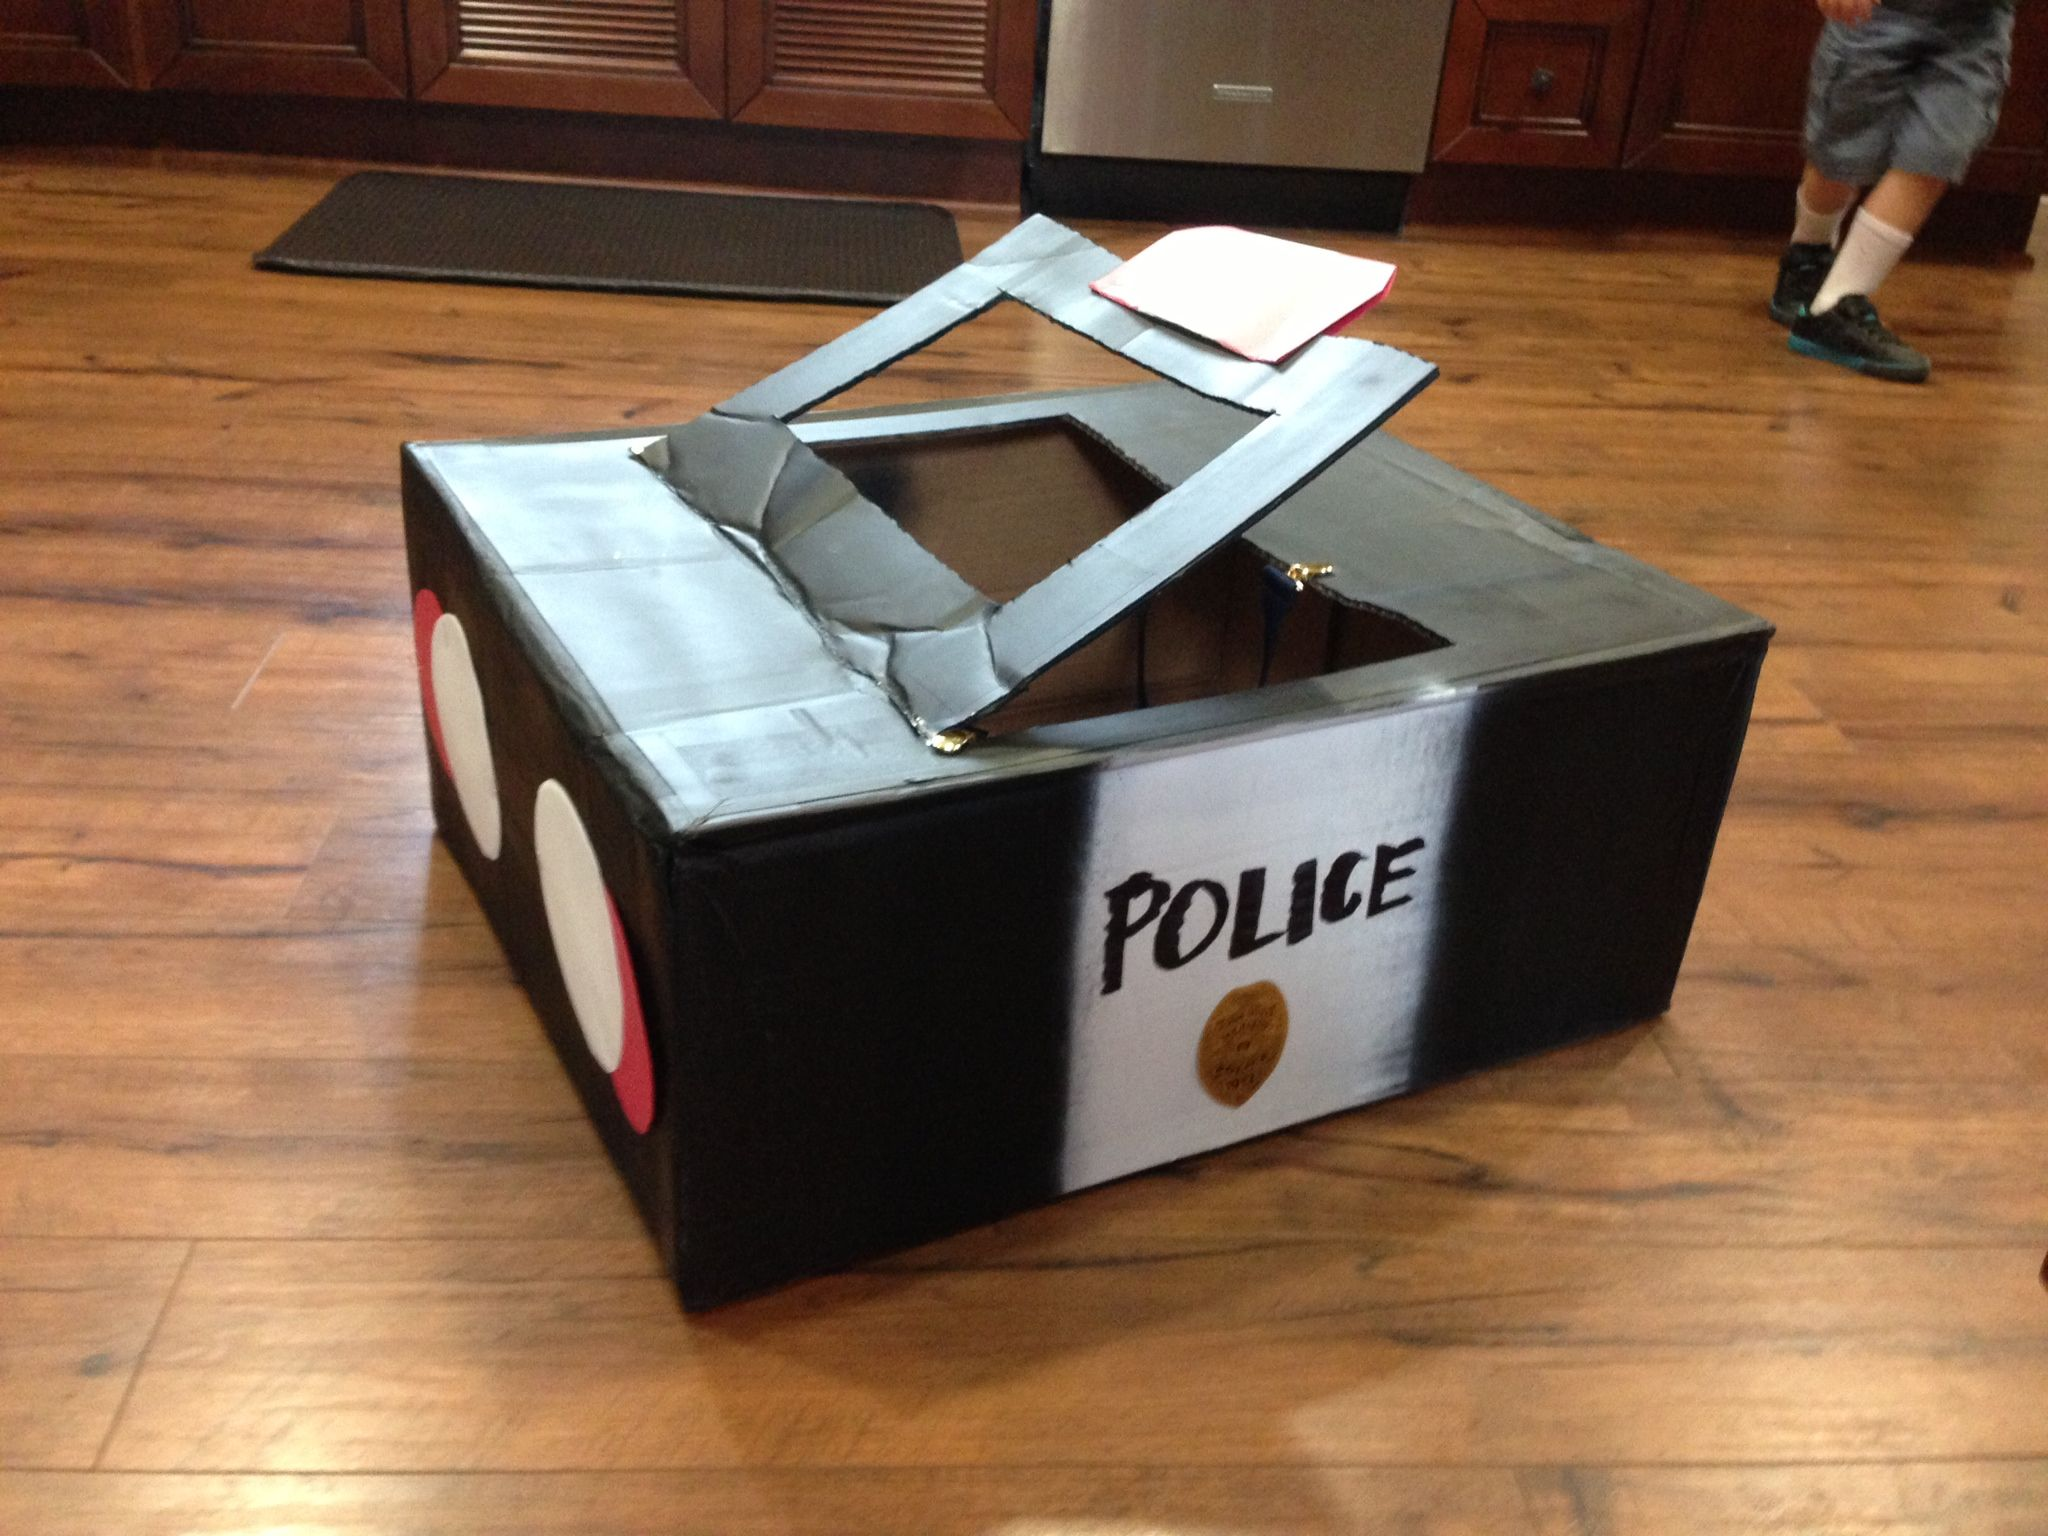 10 Ideas About Cardboard Box Cars On Pinterest: School Project-Box Police Car